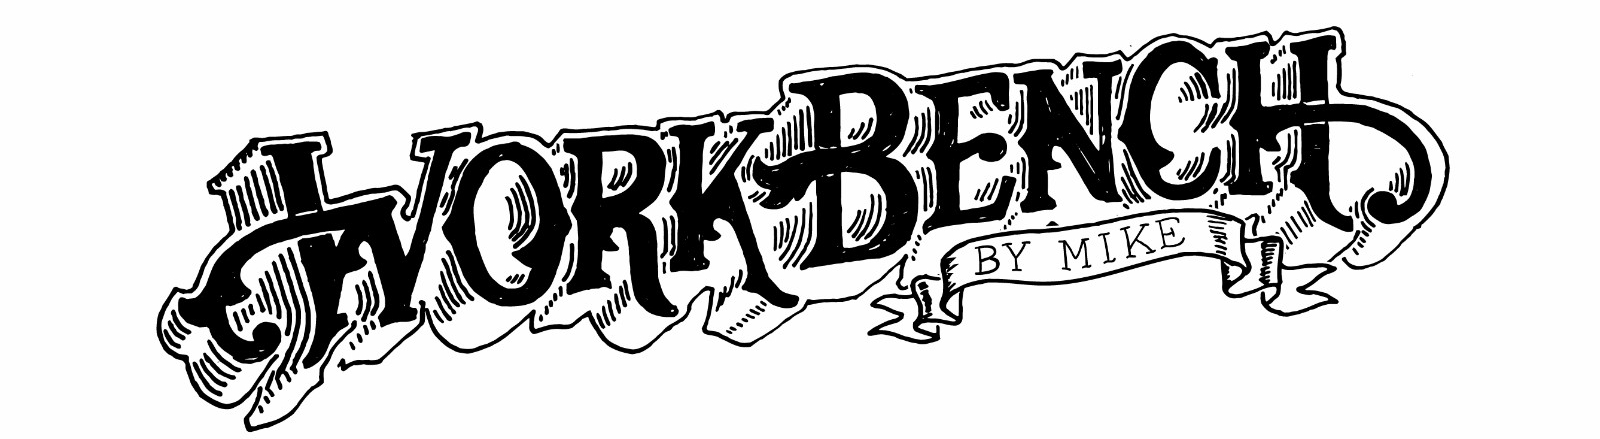 WORKBENCH logo-02 - Edited (1).jpg